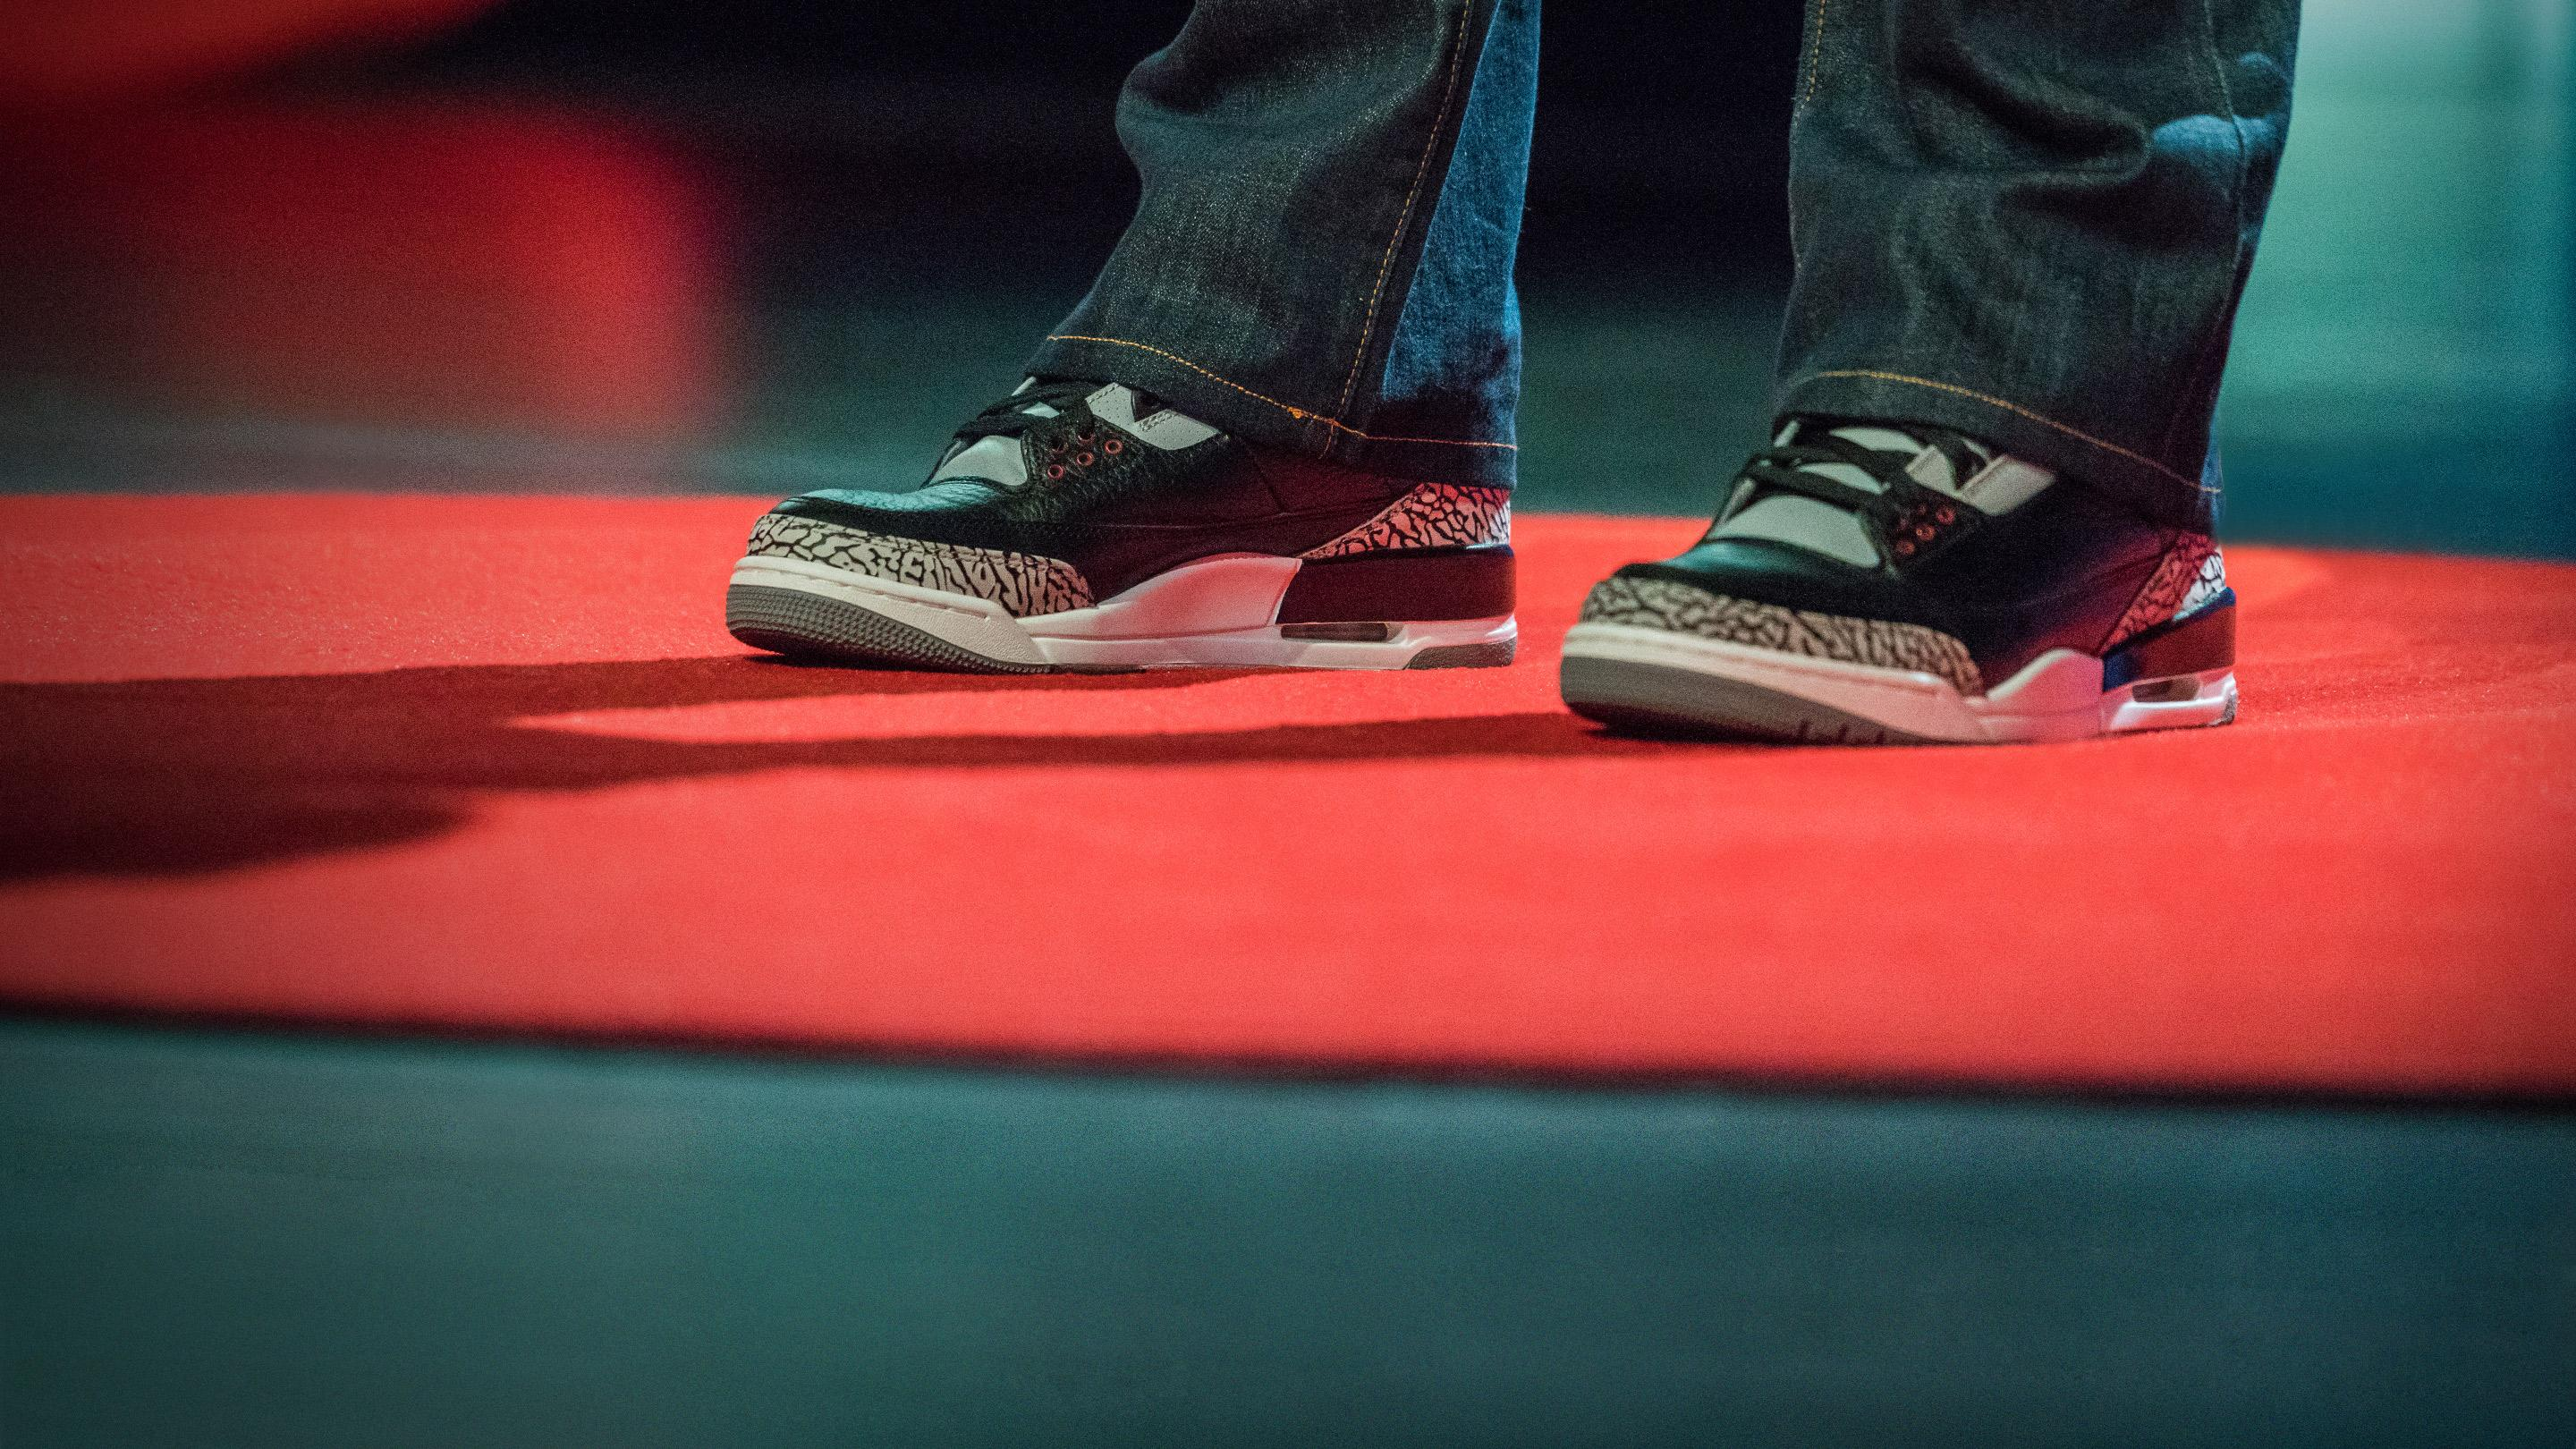 Josh Luber Why Sneakers Are A Great Investment Ted Talk